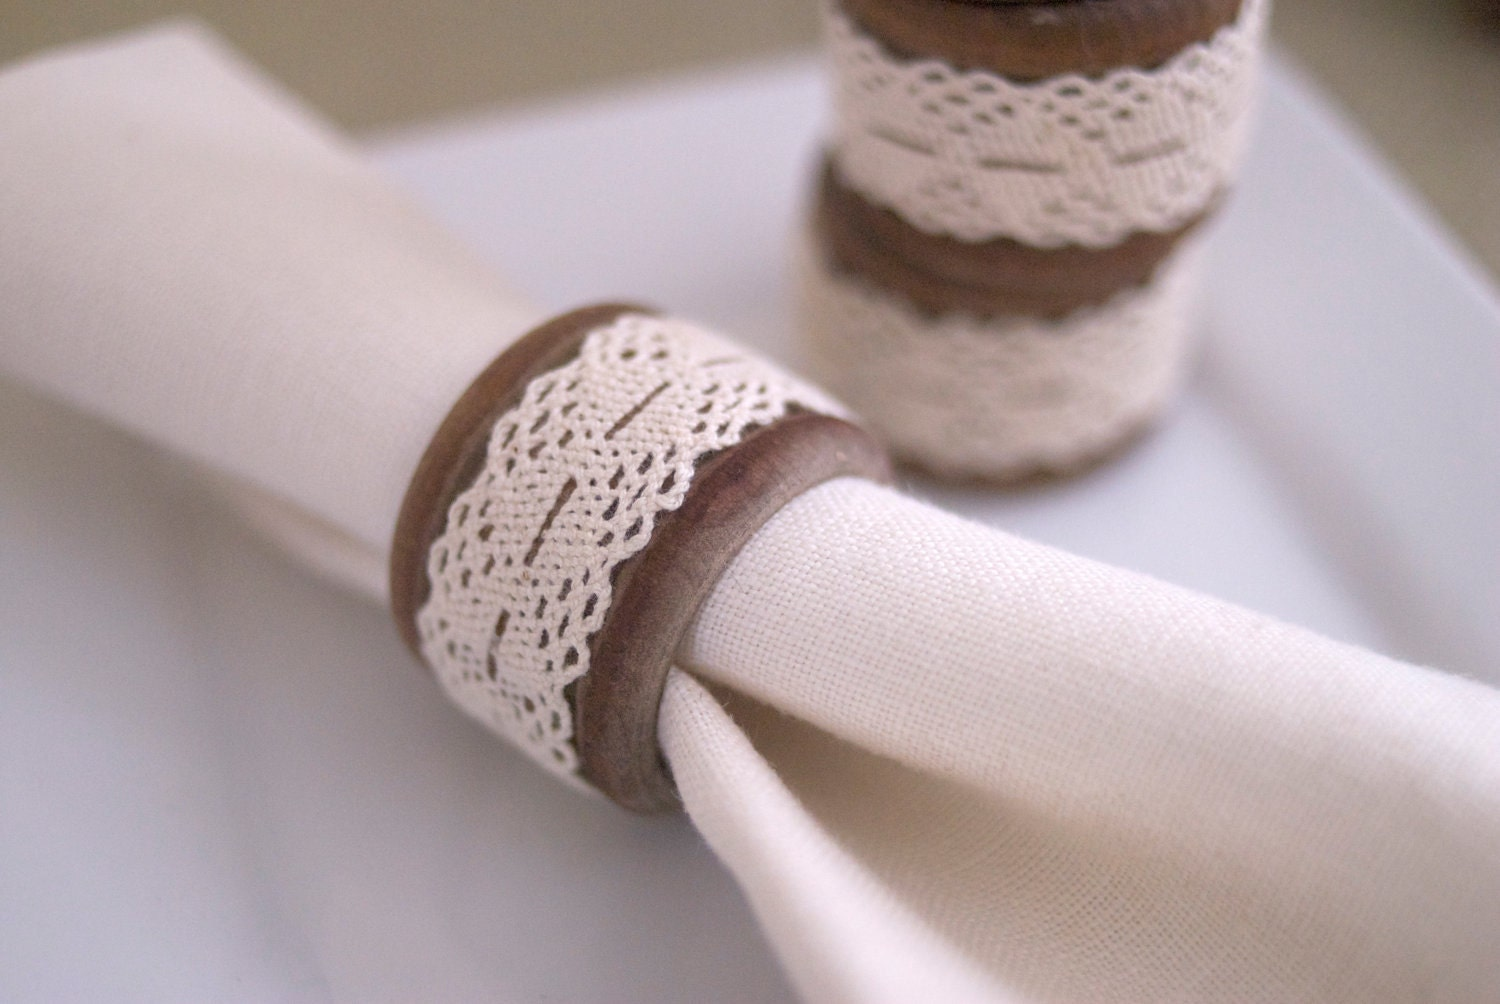 Rustic and Farmhouse Chic Wooden and Vintage Lace Napkin Rings and Set of 4 Vintage Linen Napkins